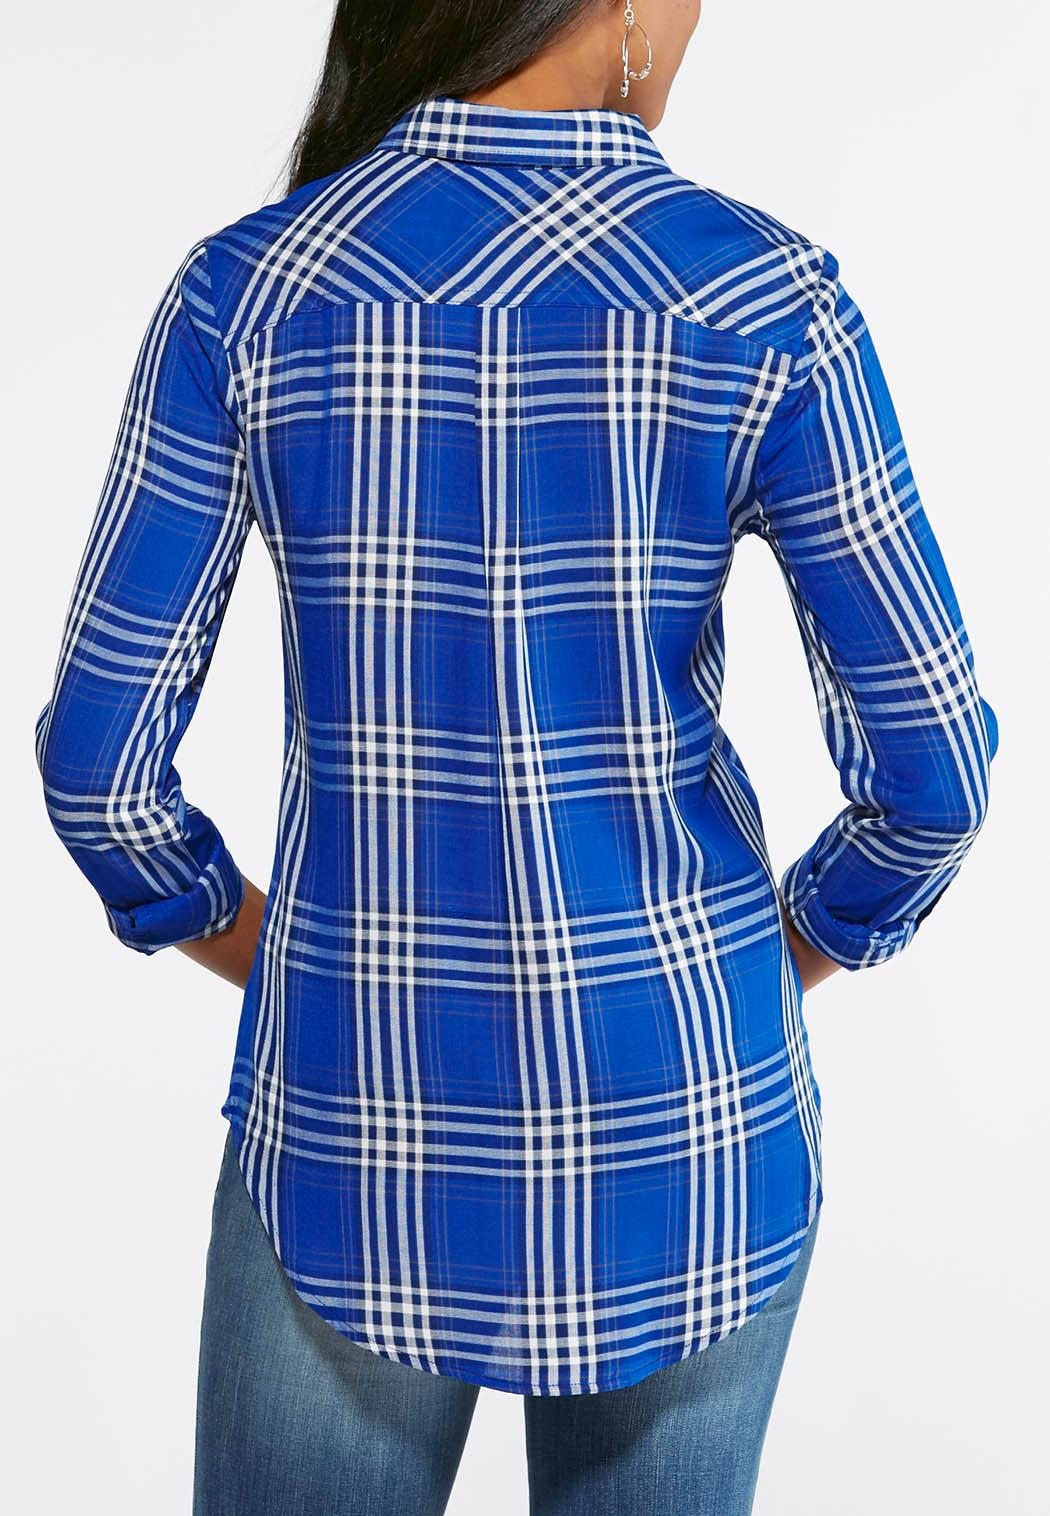 Cato fashions careers - Embroidered Gingham Plaid Shirt